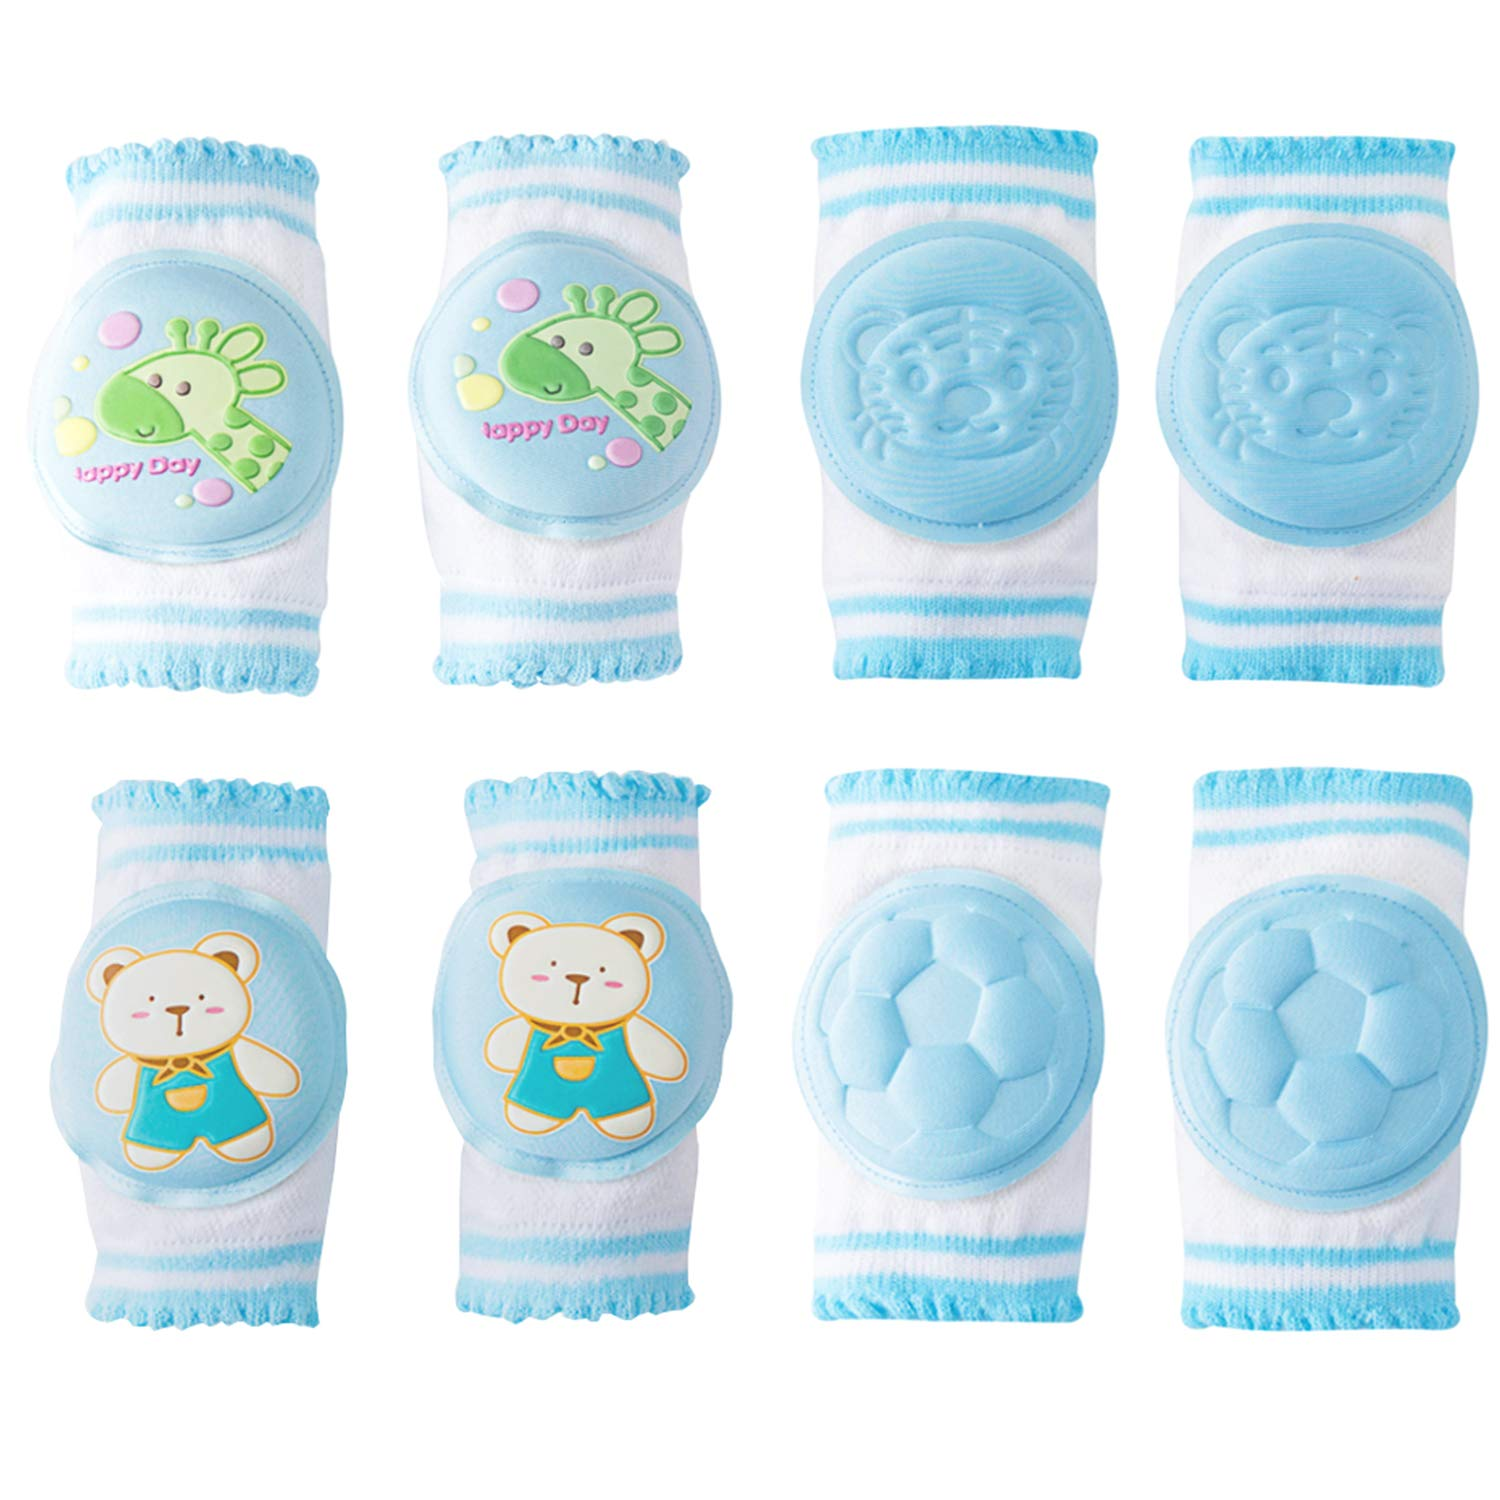 Baby Knee Pads, Oukinakinn Walking Kneepads for crawling Memory Foam Pad Cushion KMMall